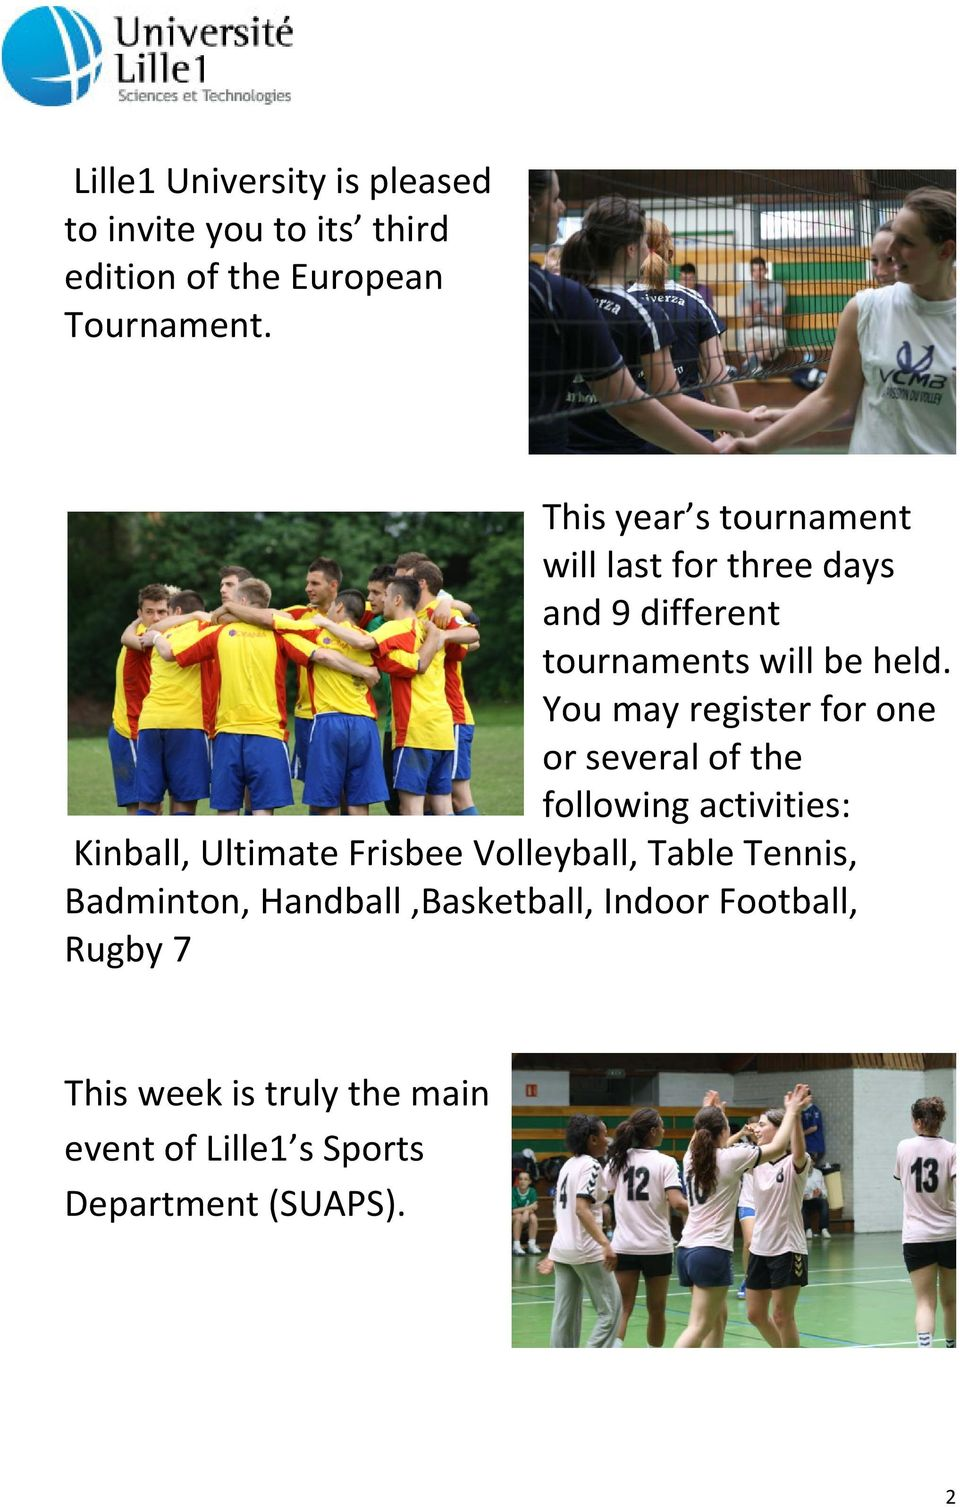 You may register for one or several of the following activities: Kinball, Ultimate Frisbee Volleyball,